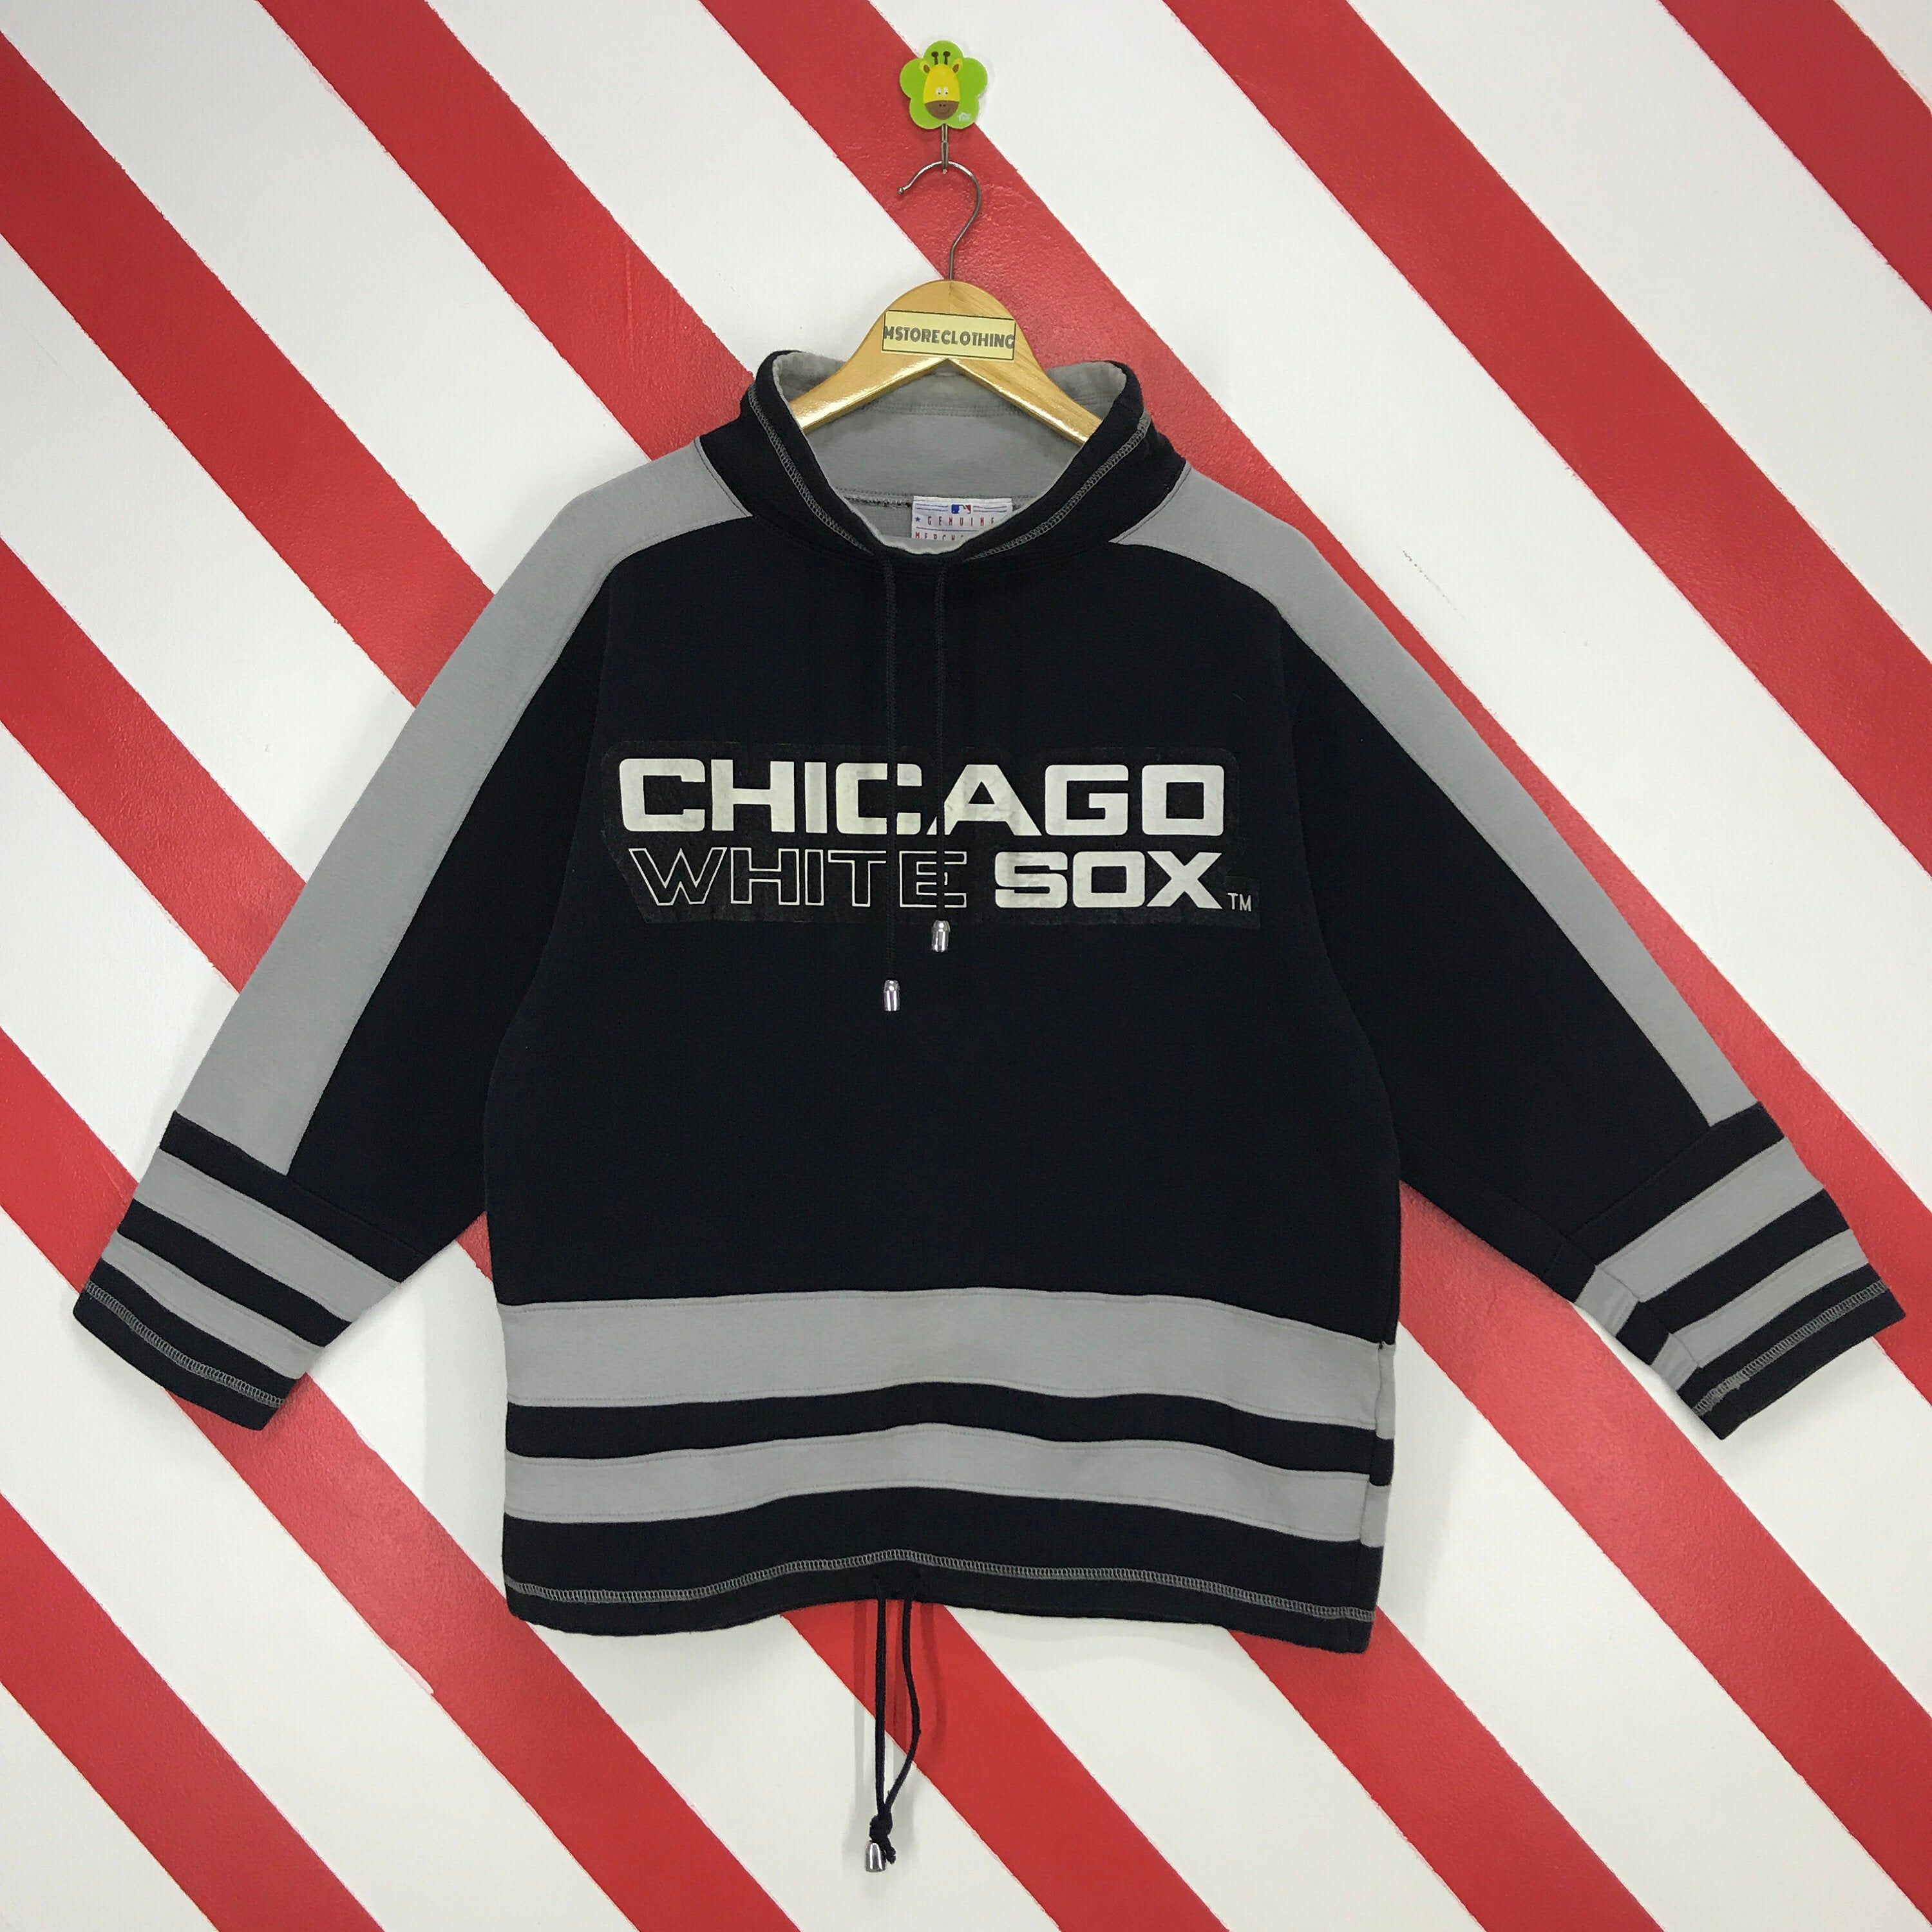 Excited to share this item from my #etsy shop: Vintage Chicago White Sox Sweatshirt White Sox Crewneck MLB White Sox Sweater Pullover Sportswear White Sox Print Logo Black Size Medium #clothing #men #pullover #athletic #chicagowhitesox #whitesox #mlb